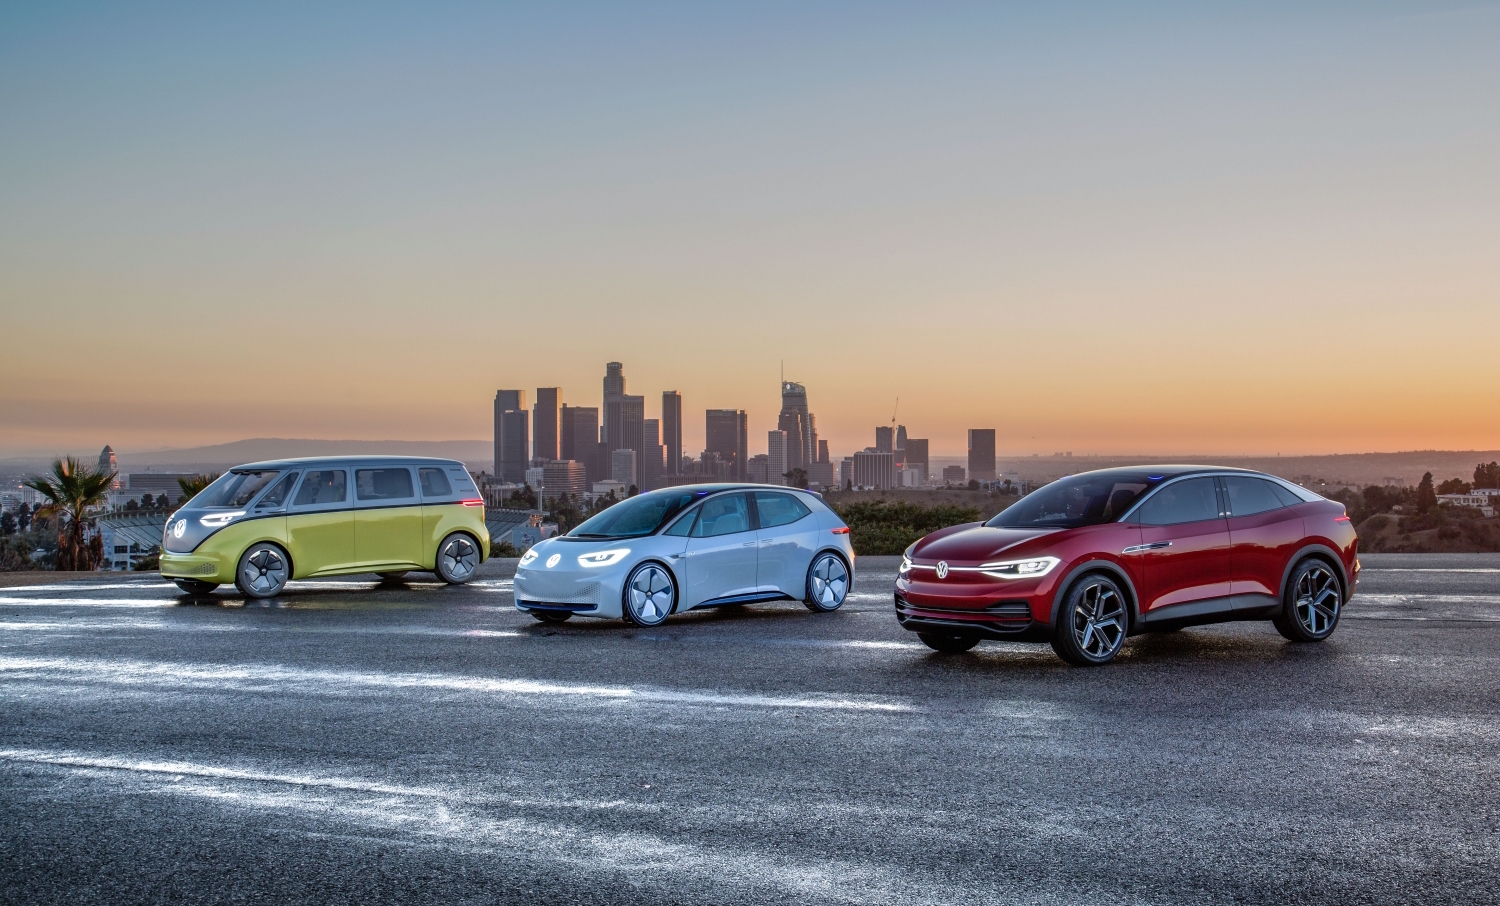 Volkswagen Group Latest Models >> Will Volkswagen Become #1 Electric Automaker Within 5–10 Years? | CleanTechnica